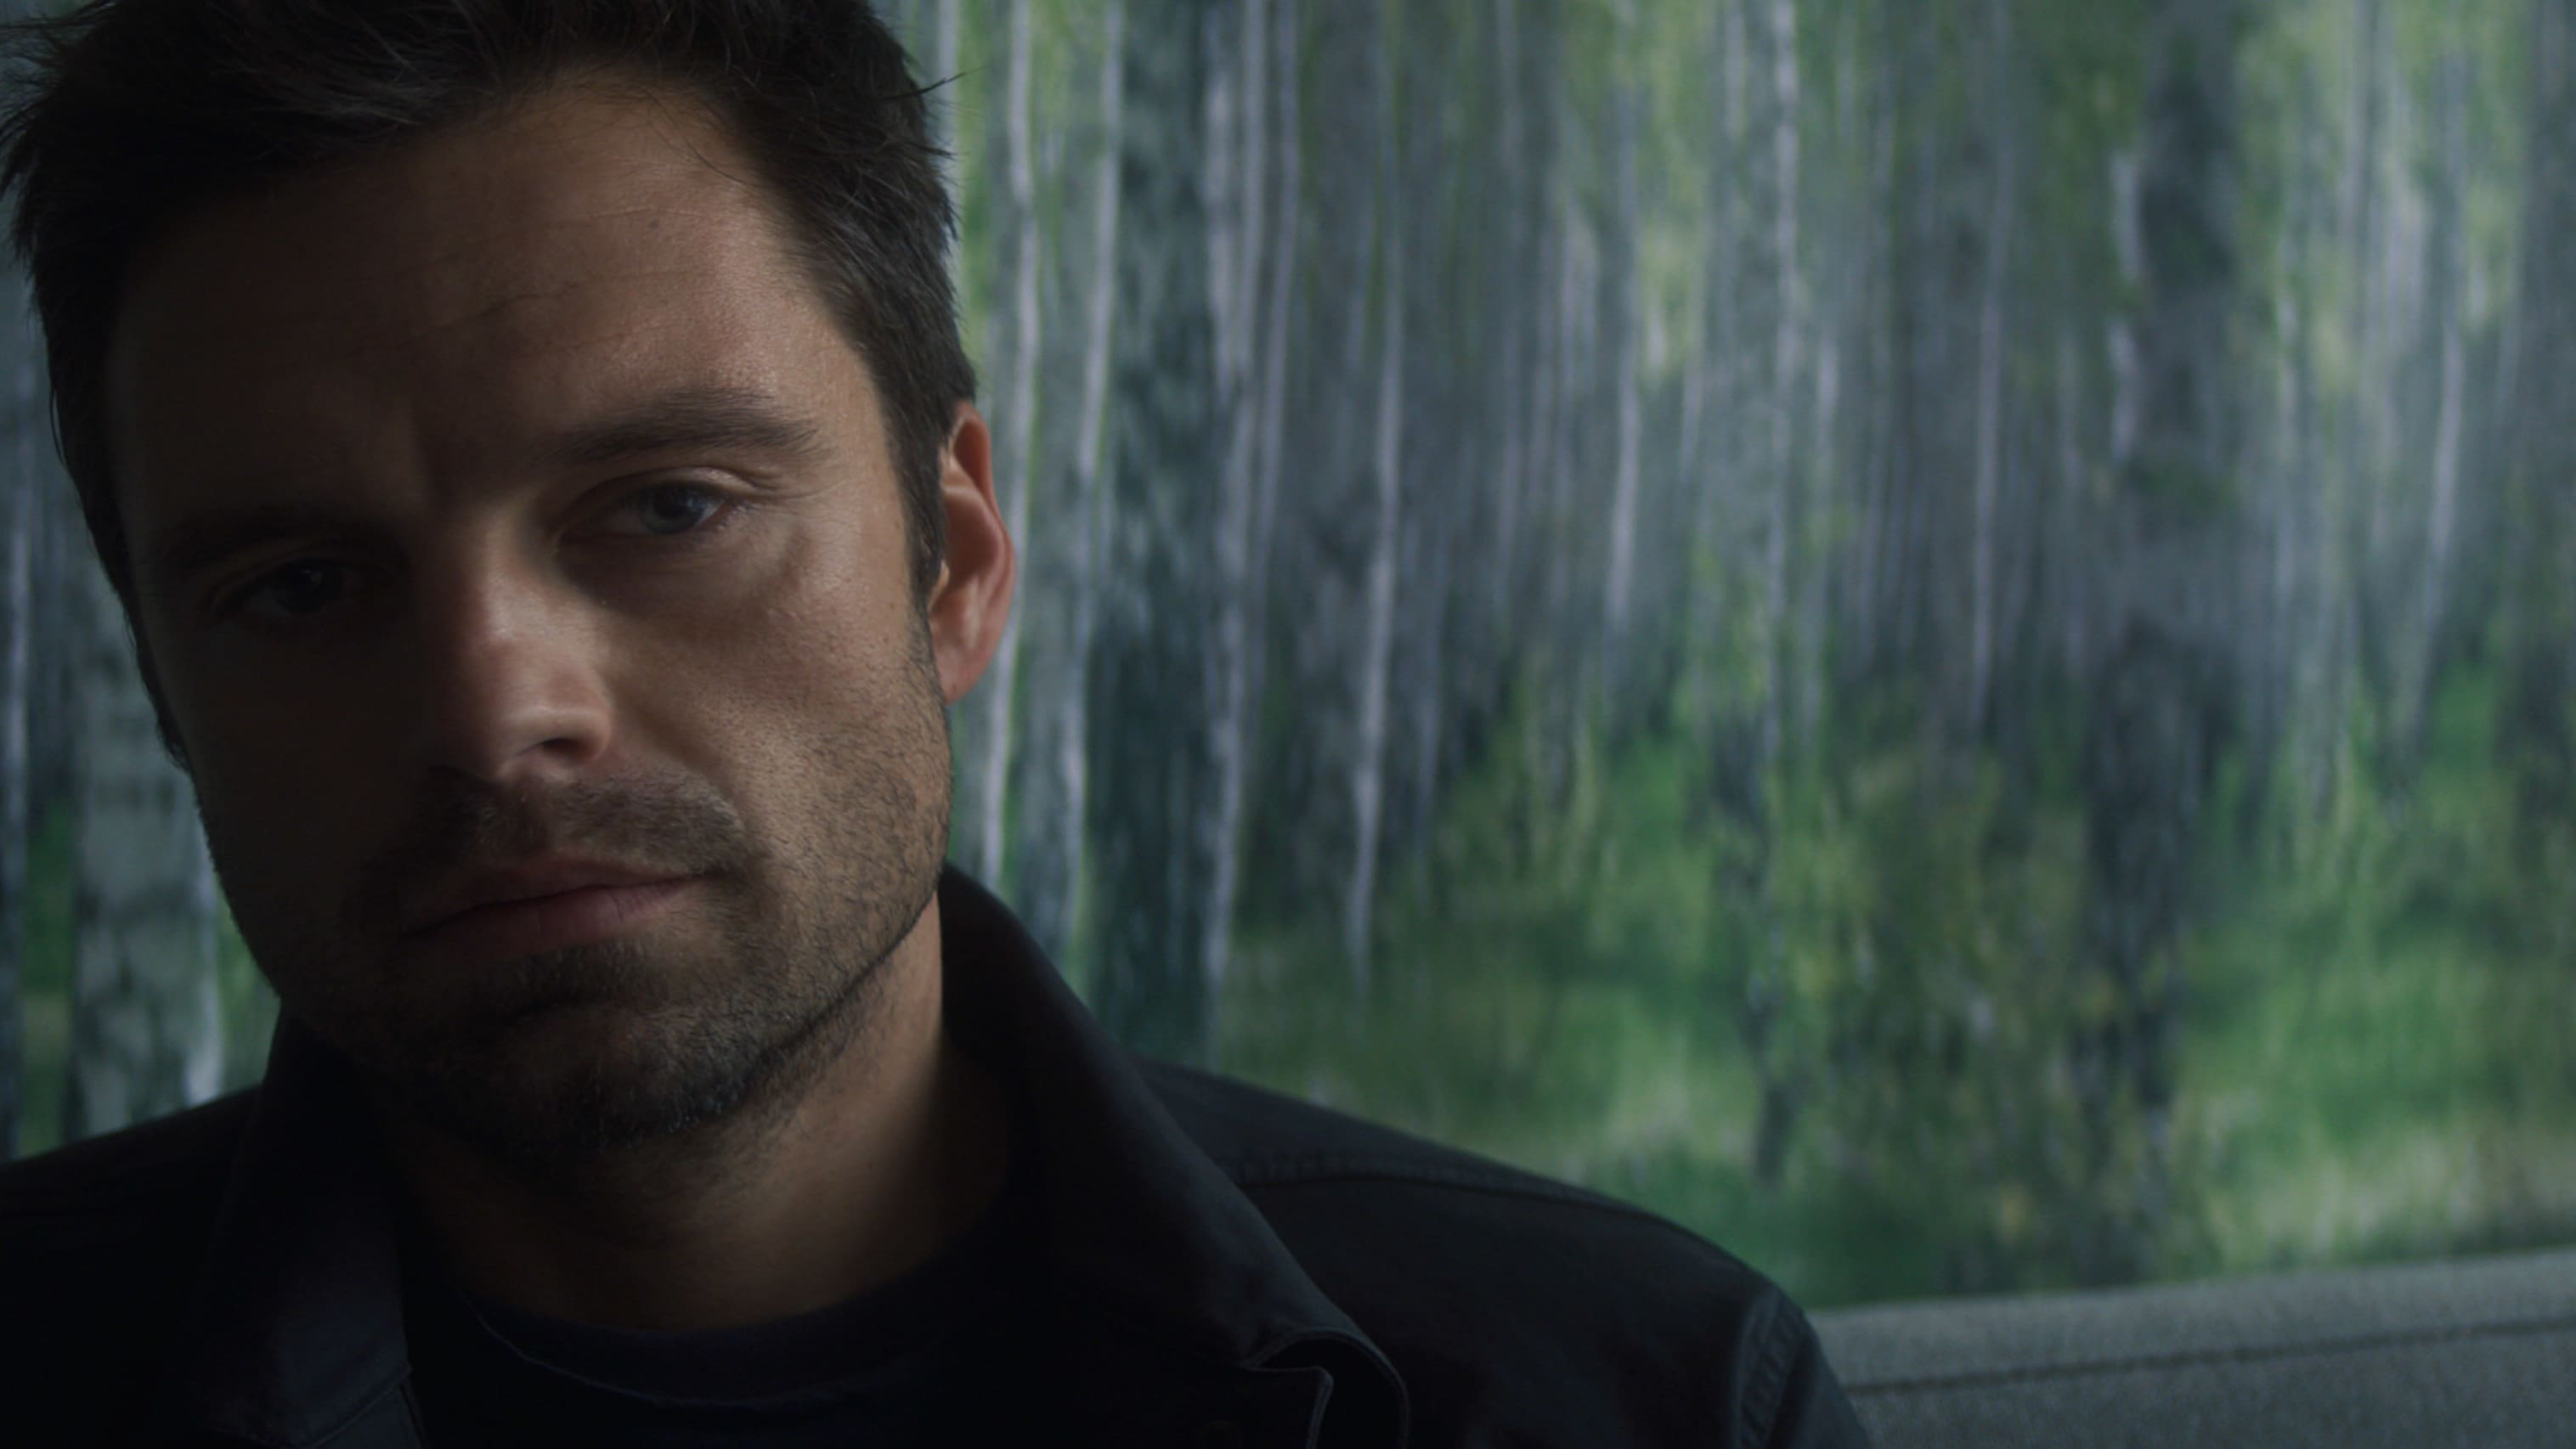 Winter Soldier/Bucky Barnes (Sebastian Stan) in Marvel Studios' THE FALCON AND THE WINTER SOLDIER exclusively on Disney+. Photo courtesy of Marvel Studios. ©Marvel Studios 2021. All Rights Reserved.